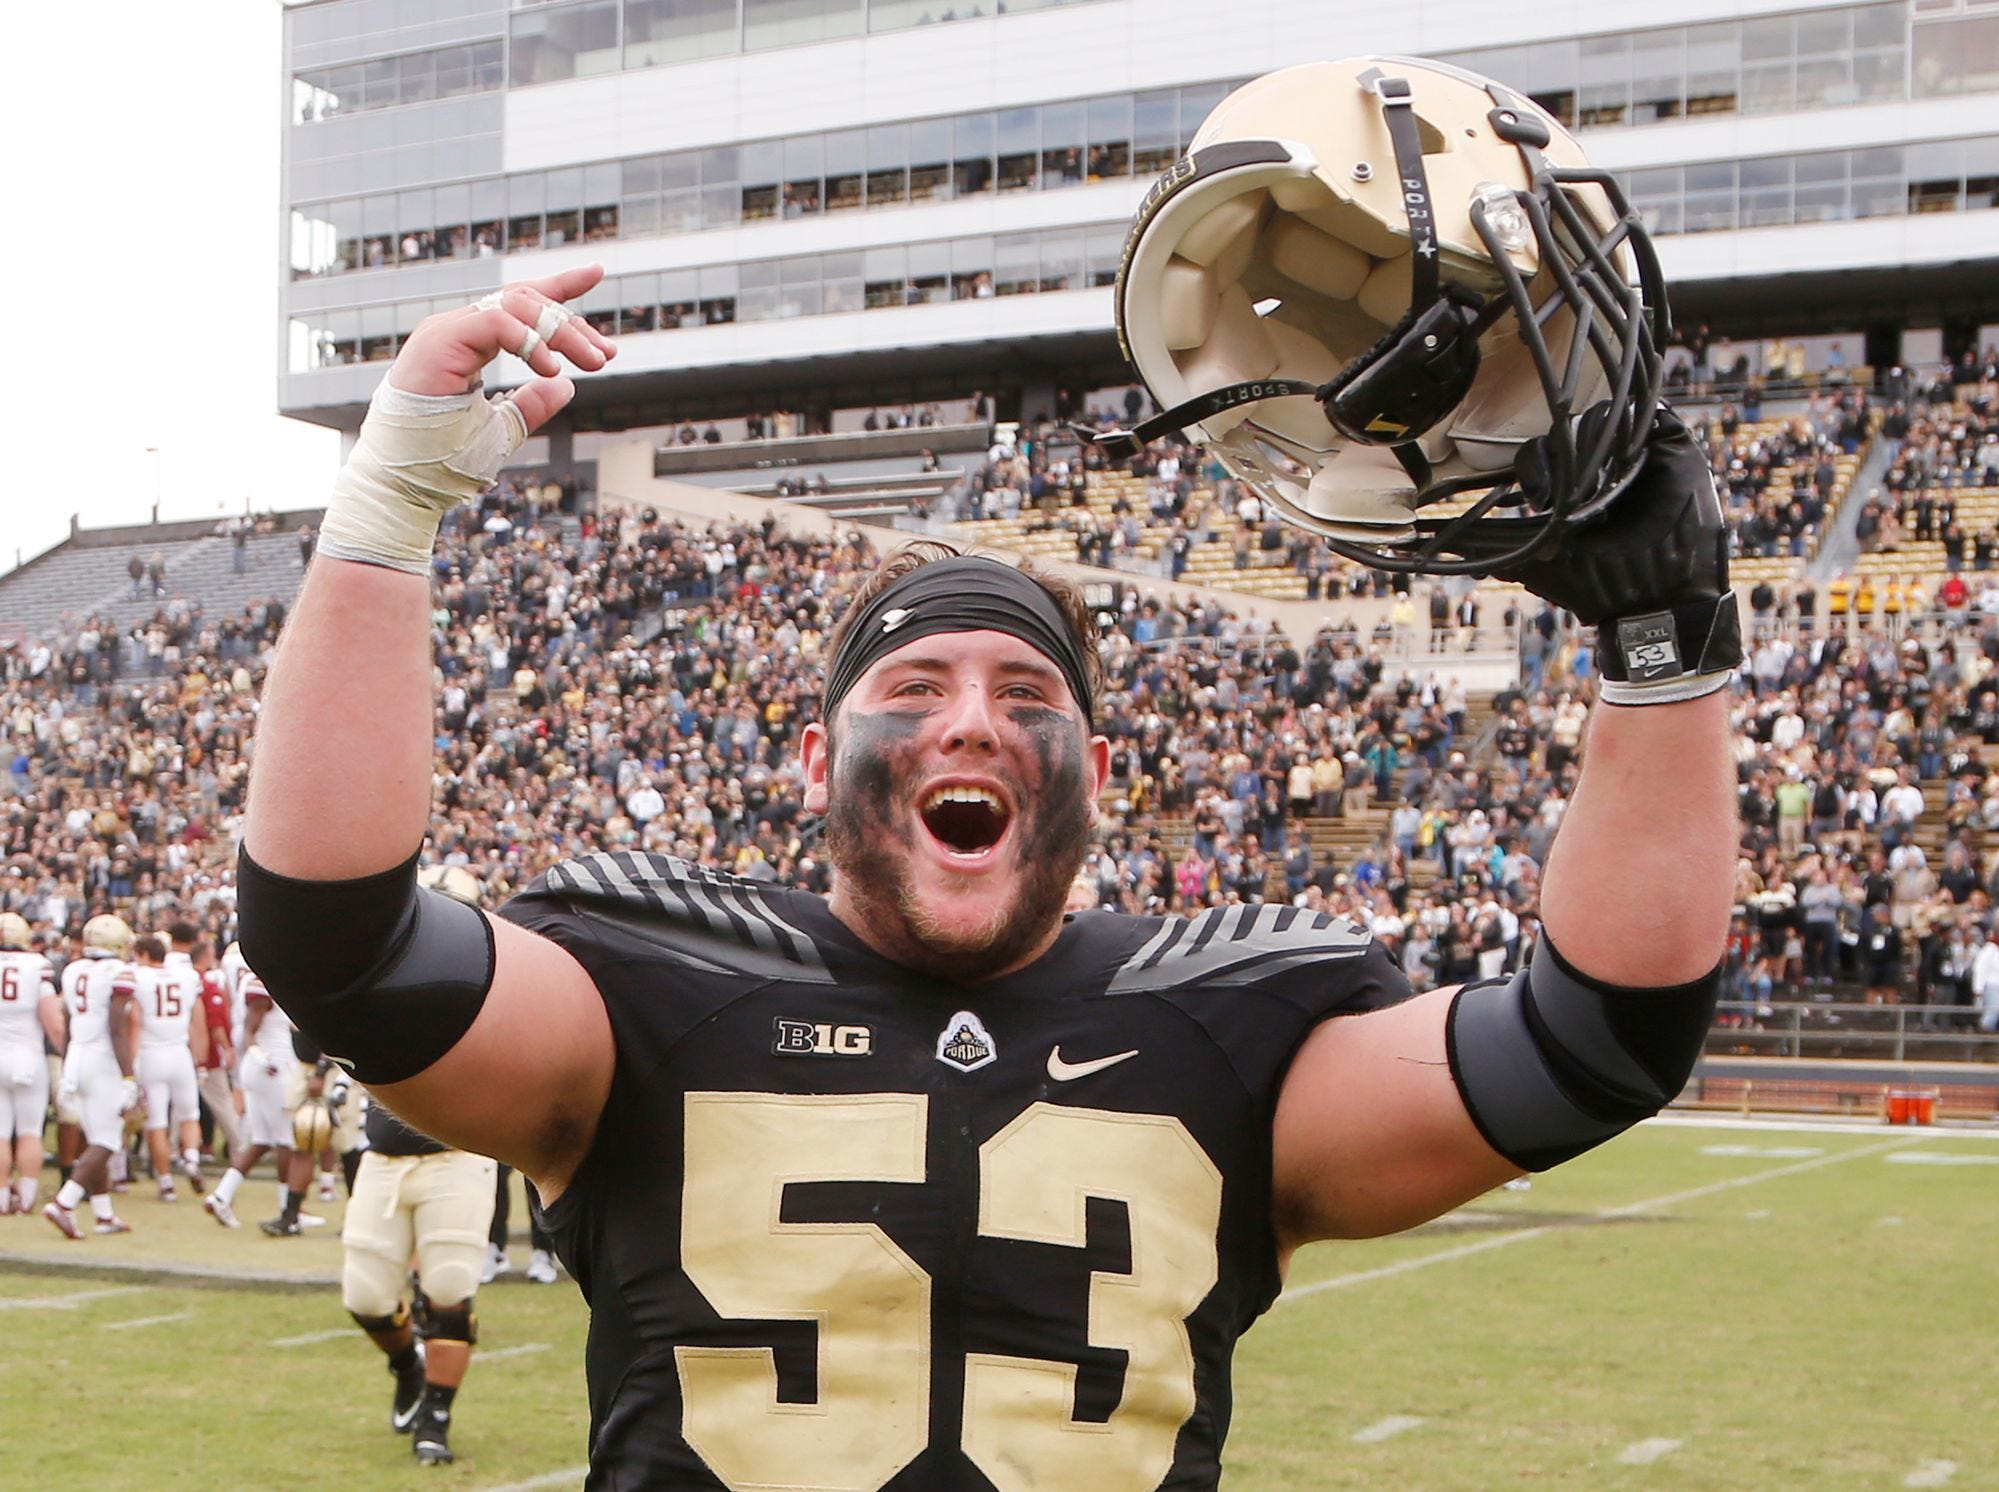 Purdue center Kirk Barron celebrates after the Boilermakers defeated No,. 23 Boston College 30-13 Saturday in Ross-Ade Stadium.